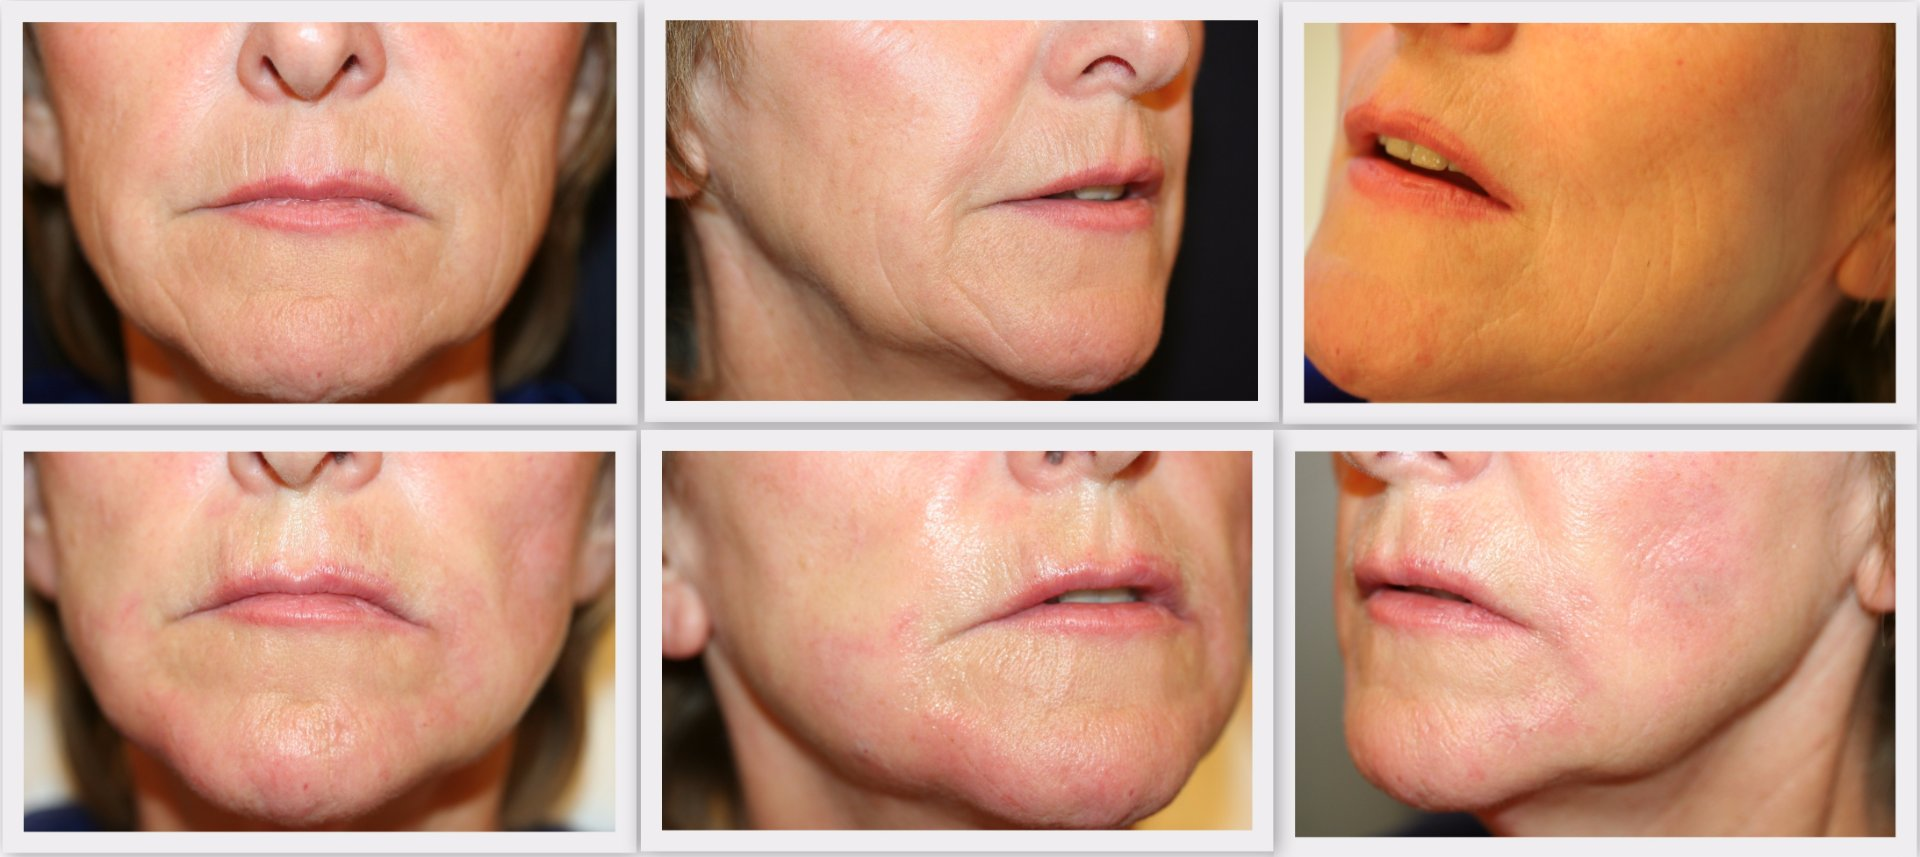 Filler cheeks Dr. Nelissen - Global Care Clinic